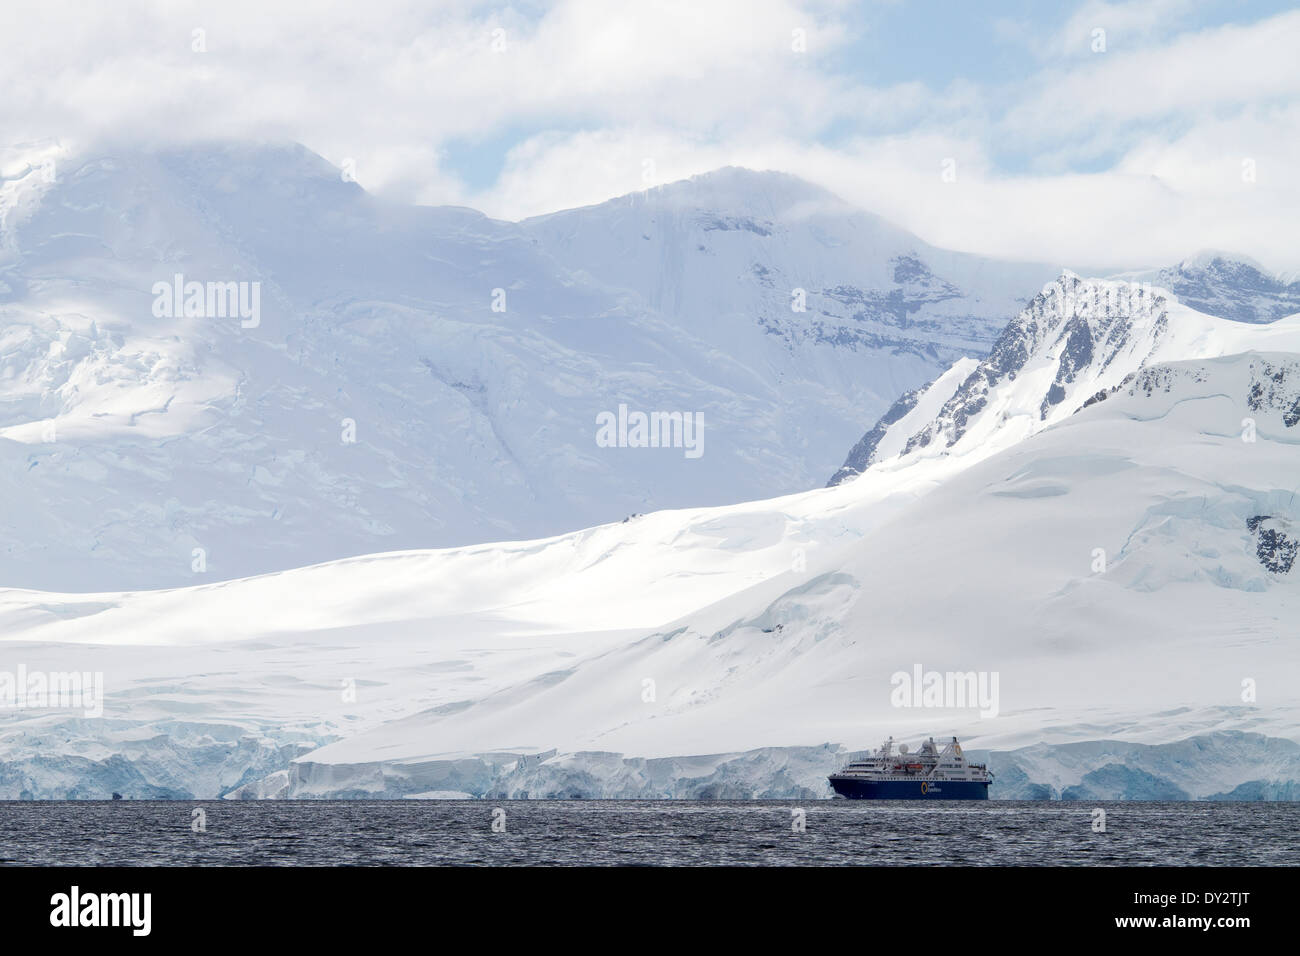 Antarctica tourism expedition cruise ship looks small in the Antarctica landscape of mountains, mountain,  Antarctic Peninsula. - Stock Image